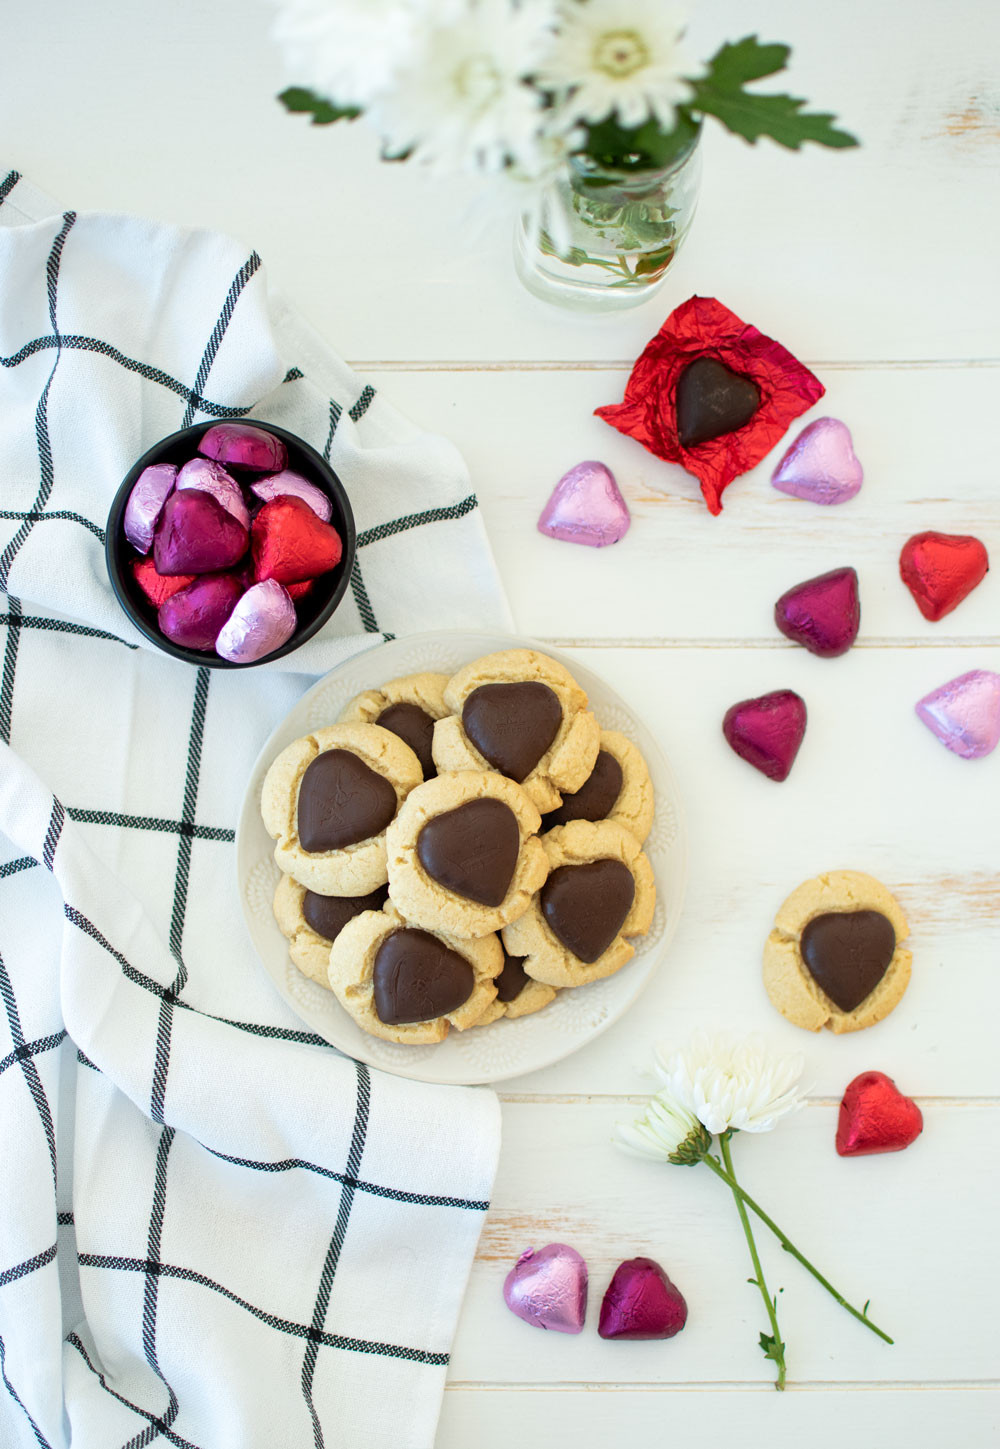 Easy Valentine's Day Heart Thumbprint Cookie recipe, using dark chocolate! Simple thumbprint recipe with chocolate hearts that makes a sweet Valentine's Day cookie #thumbprintcookies #valentinesdaycookies #valentinesday #valentinesdaycandy #valentinesdaychocolate #chocolatethumbprints #thumbprints #highaltitudebaking